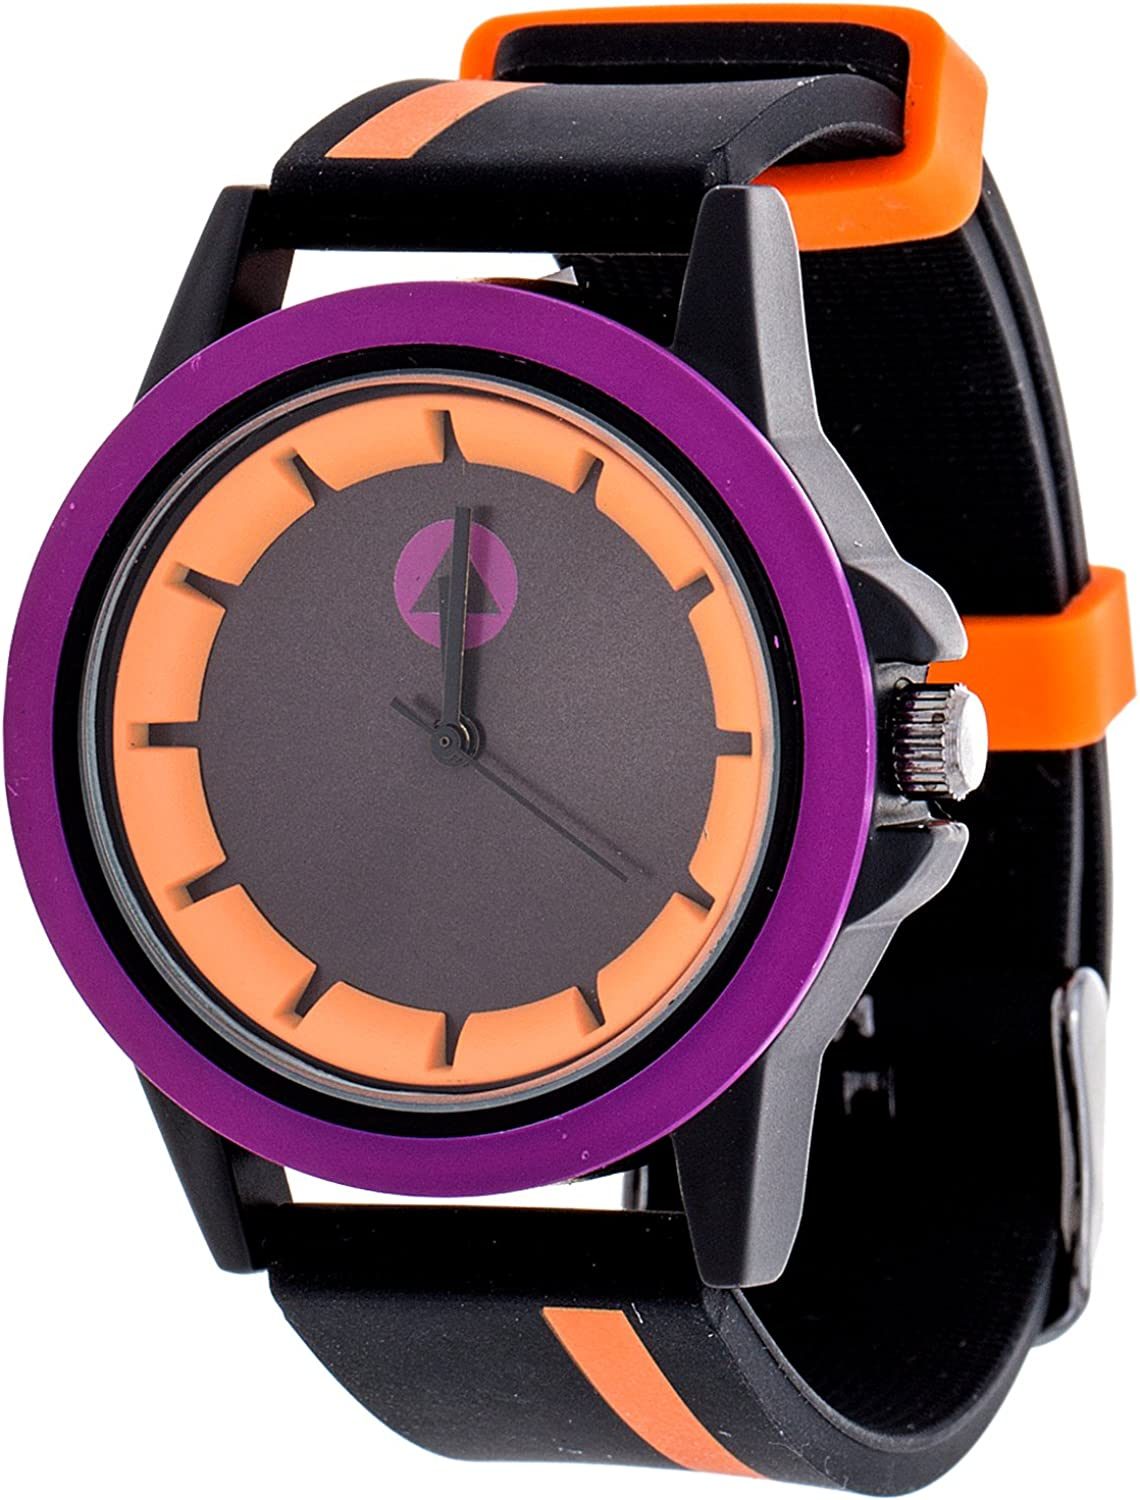 Airwalk Chinese-Automatic Watch with Silicone Strap, Black Model AWW-5099-OR